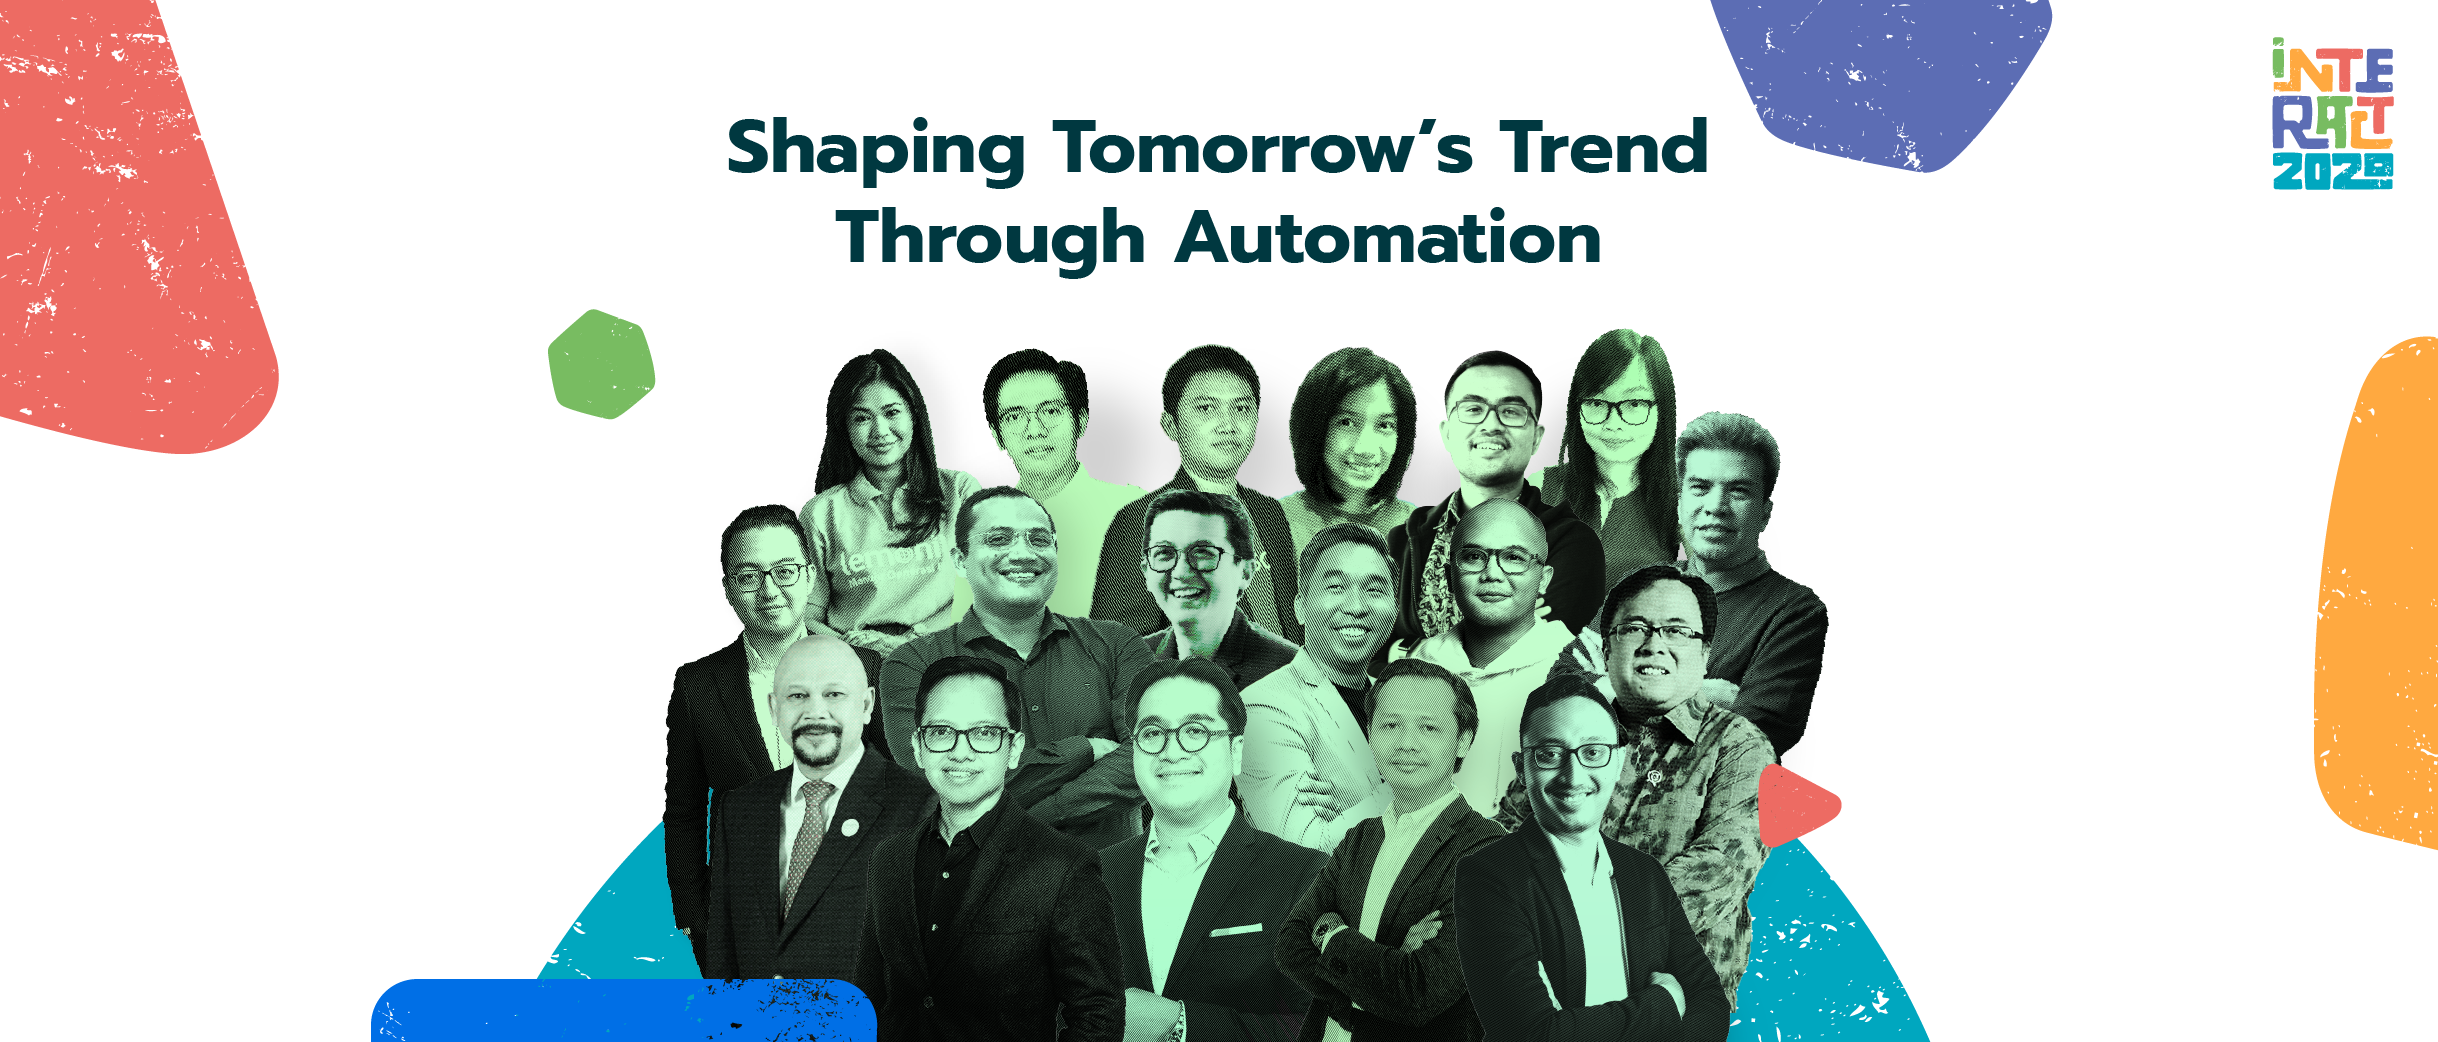 The INTERACT 2020 discussed how automation is shaping tomorrow's trend with several notable speakers